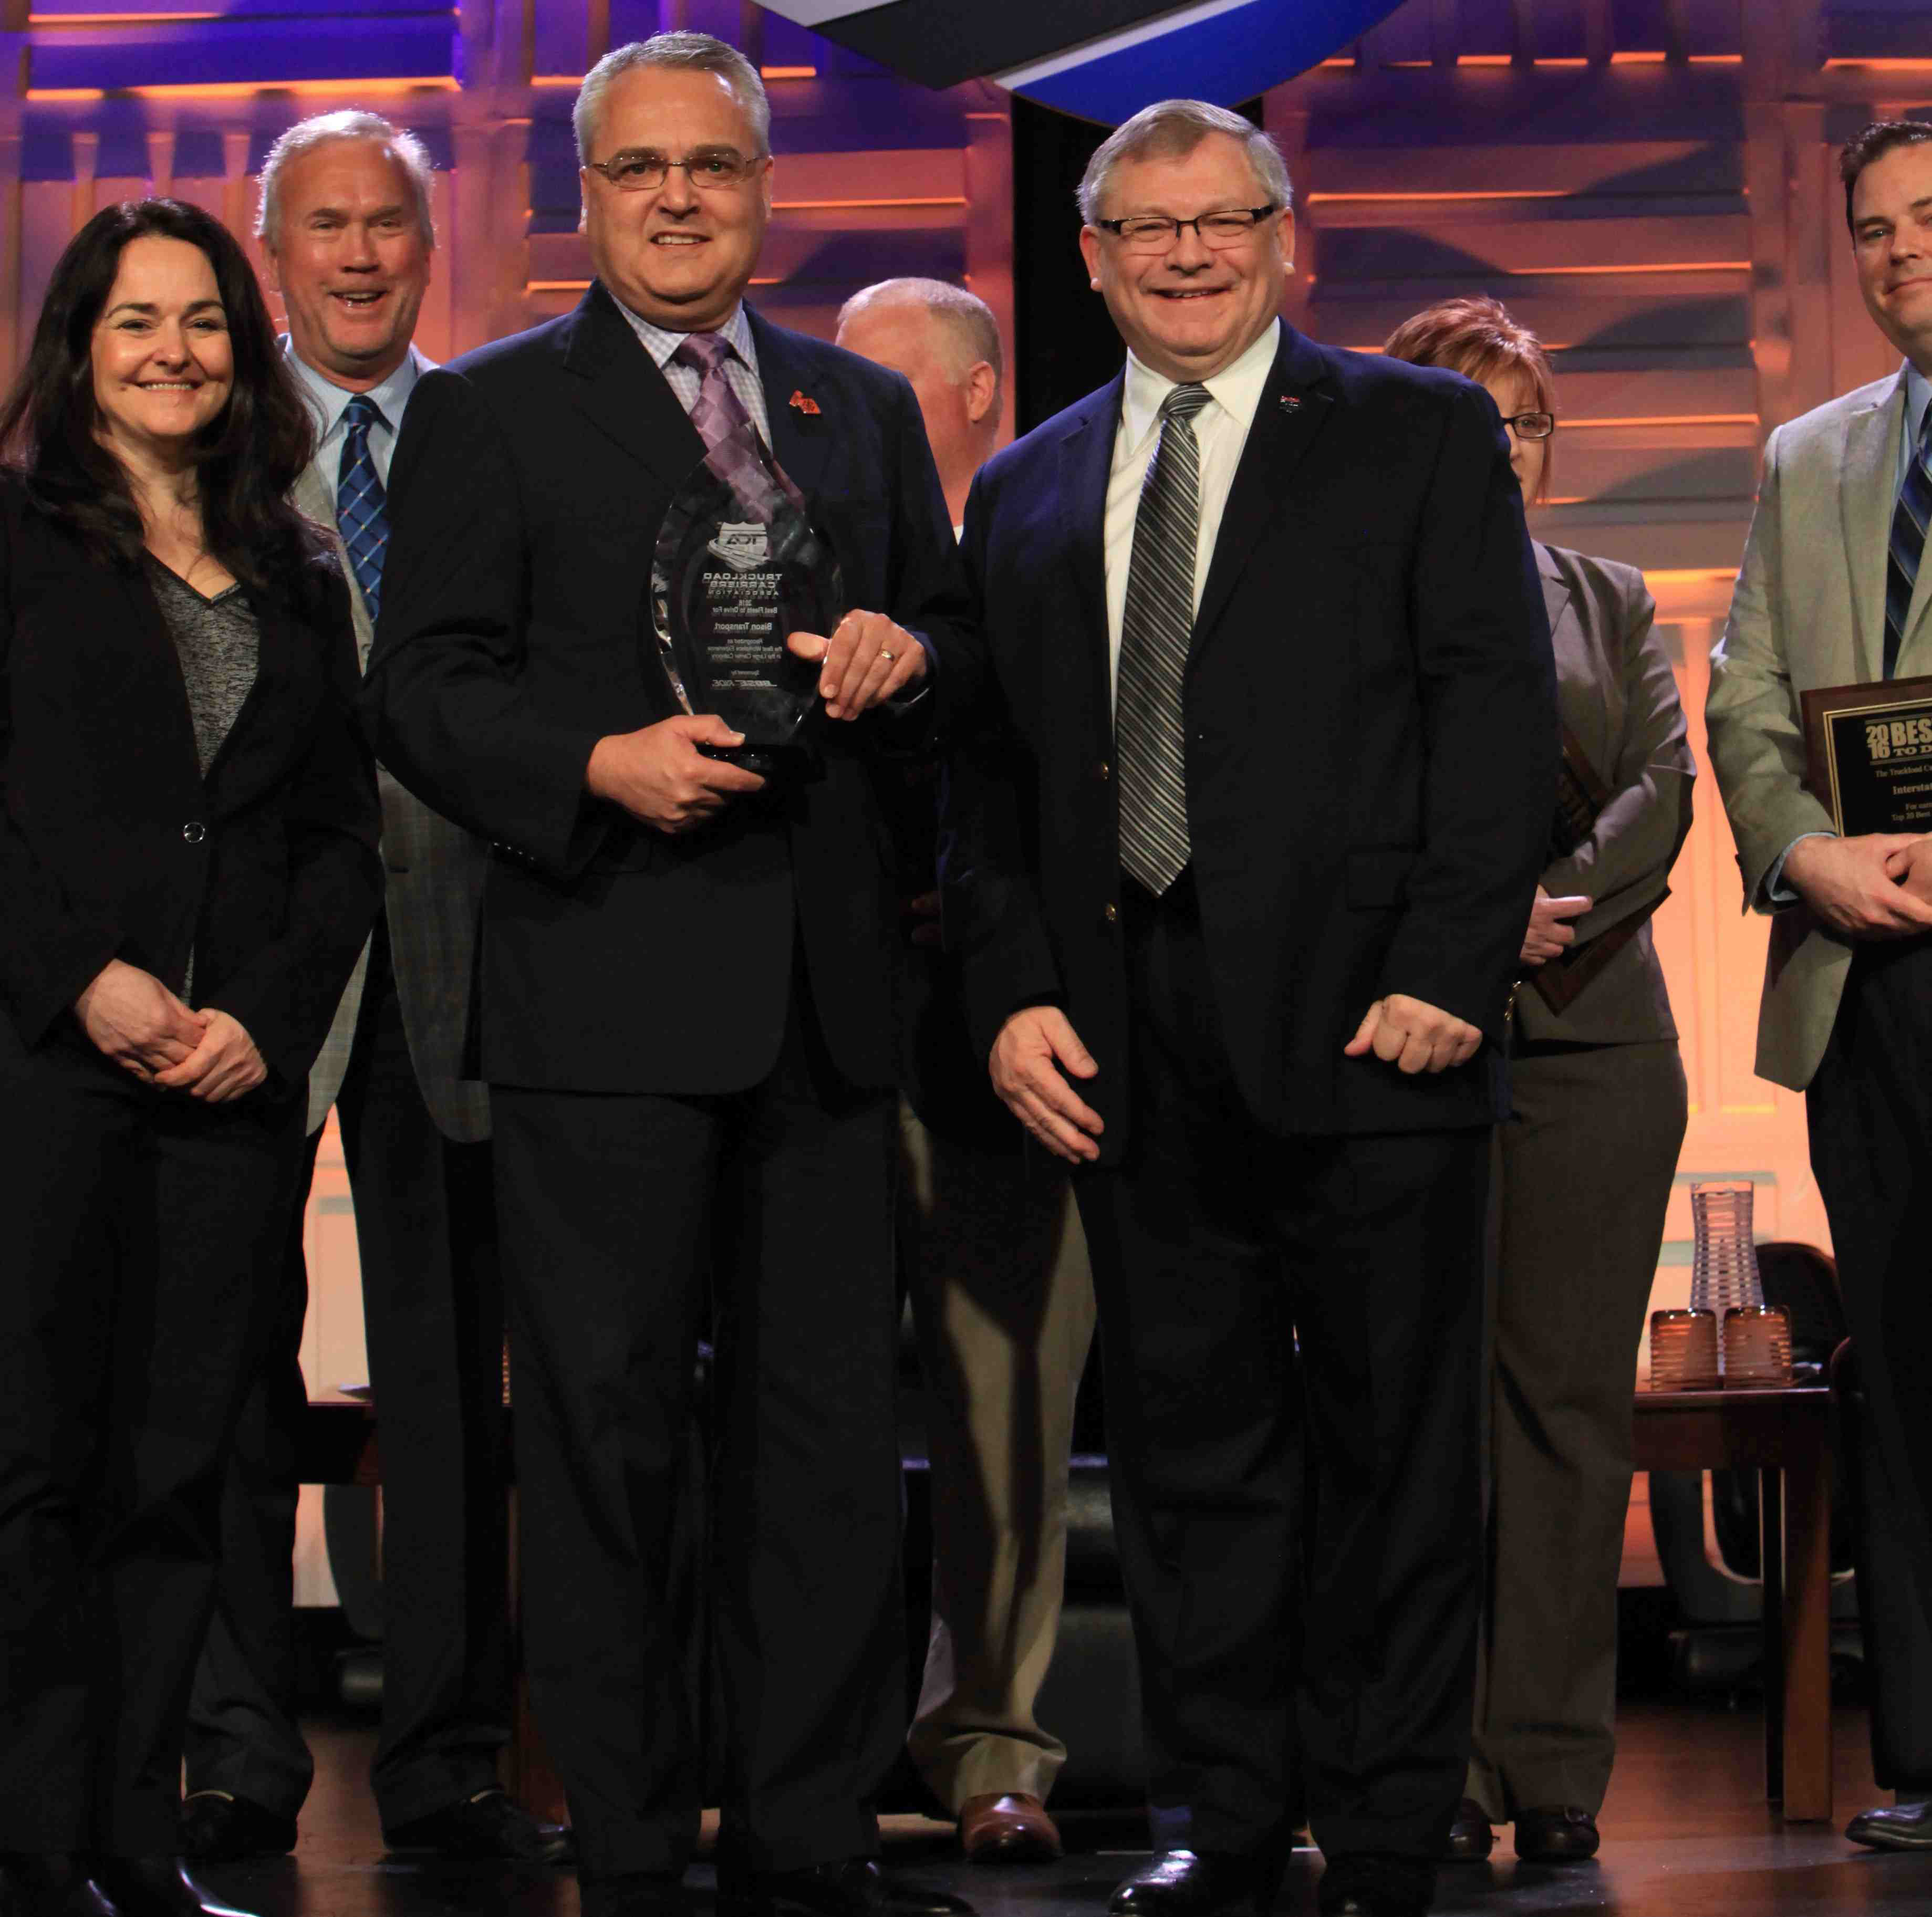 Bison Transport was named Best Overall Fleet in the large carrier category.